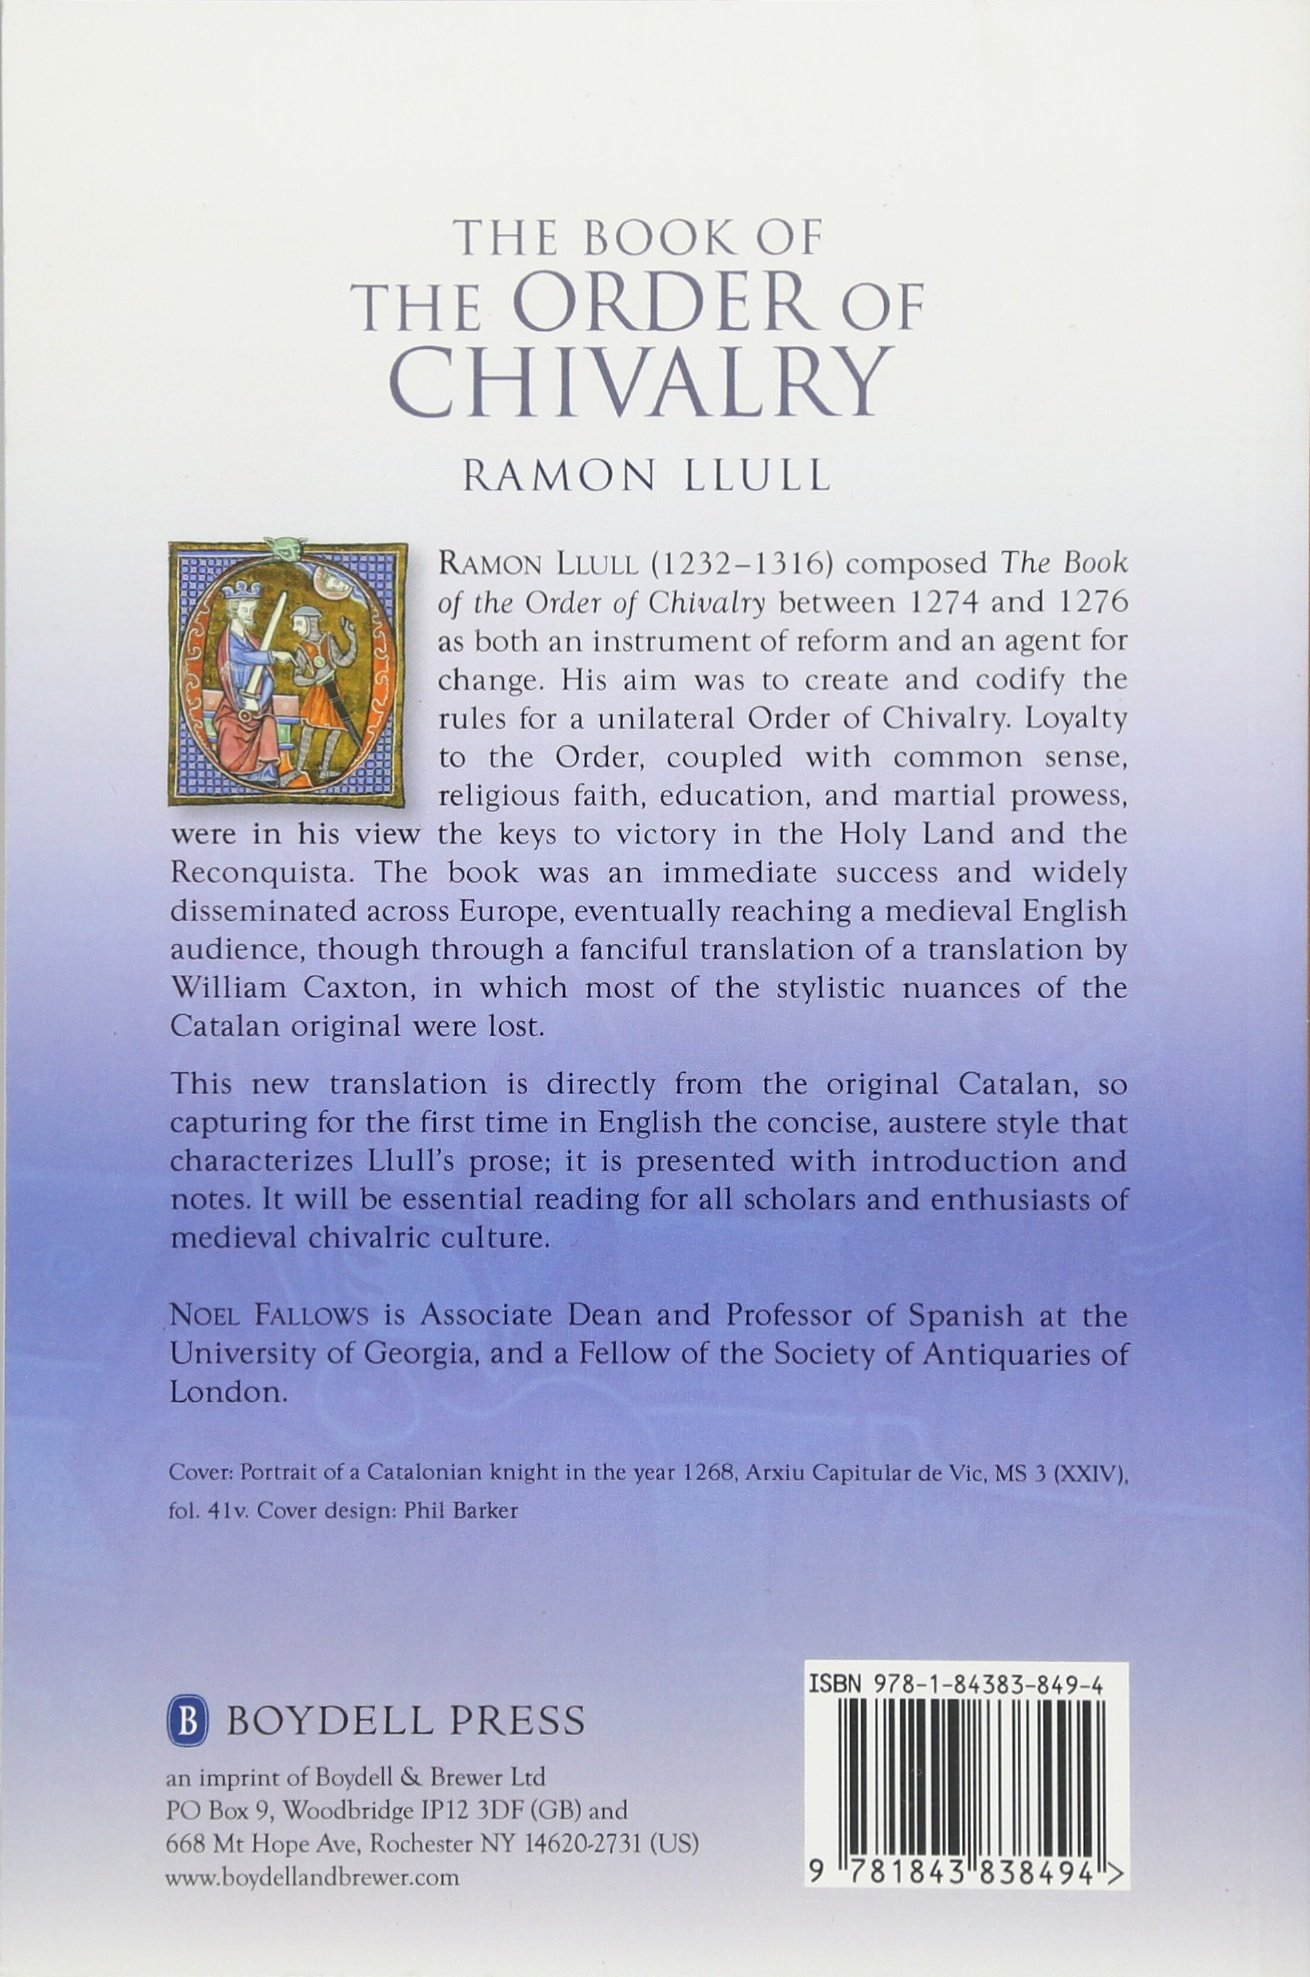 what led to the development of the code of chivalry